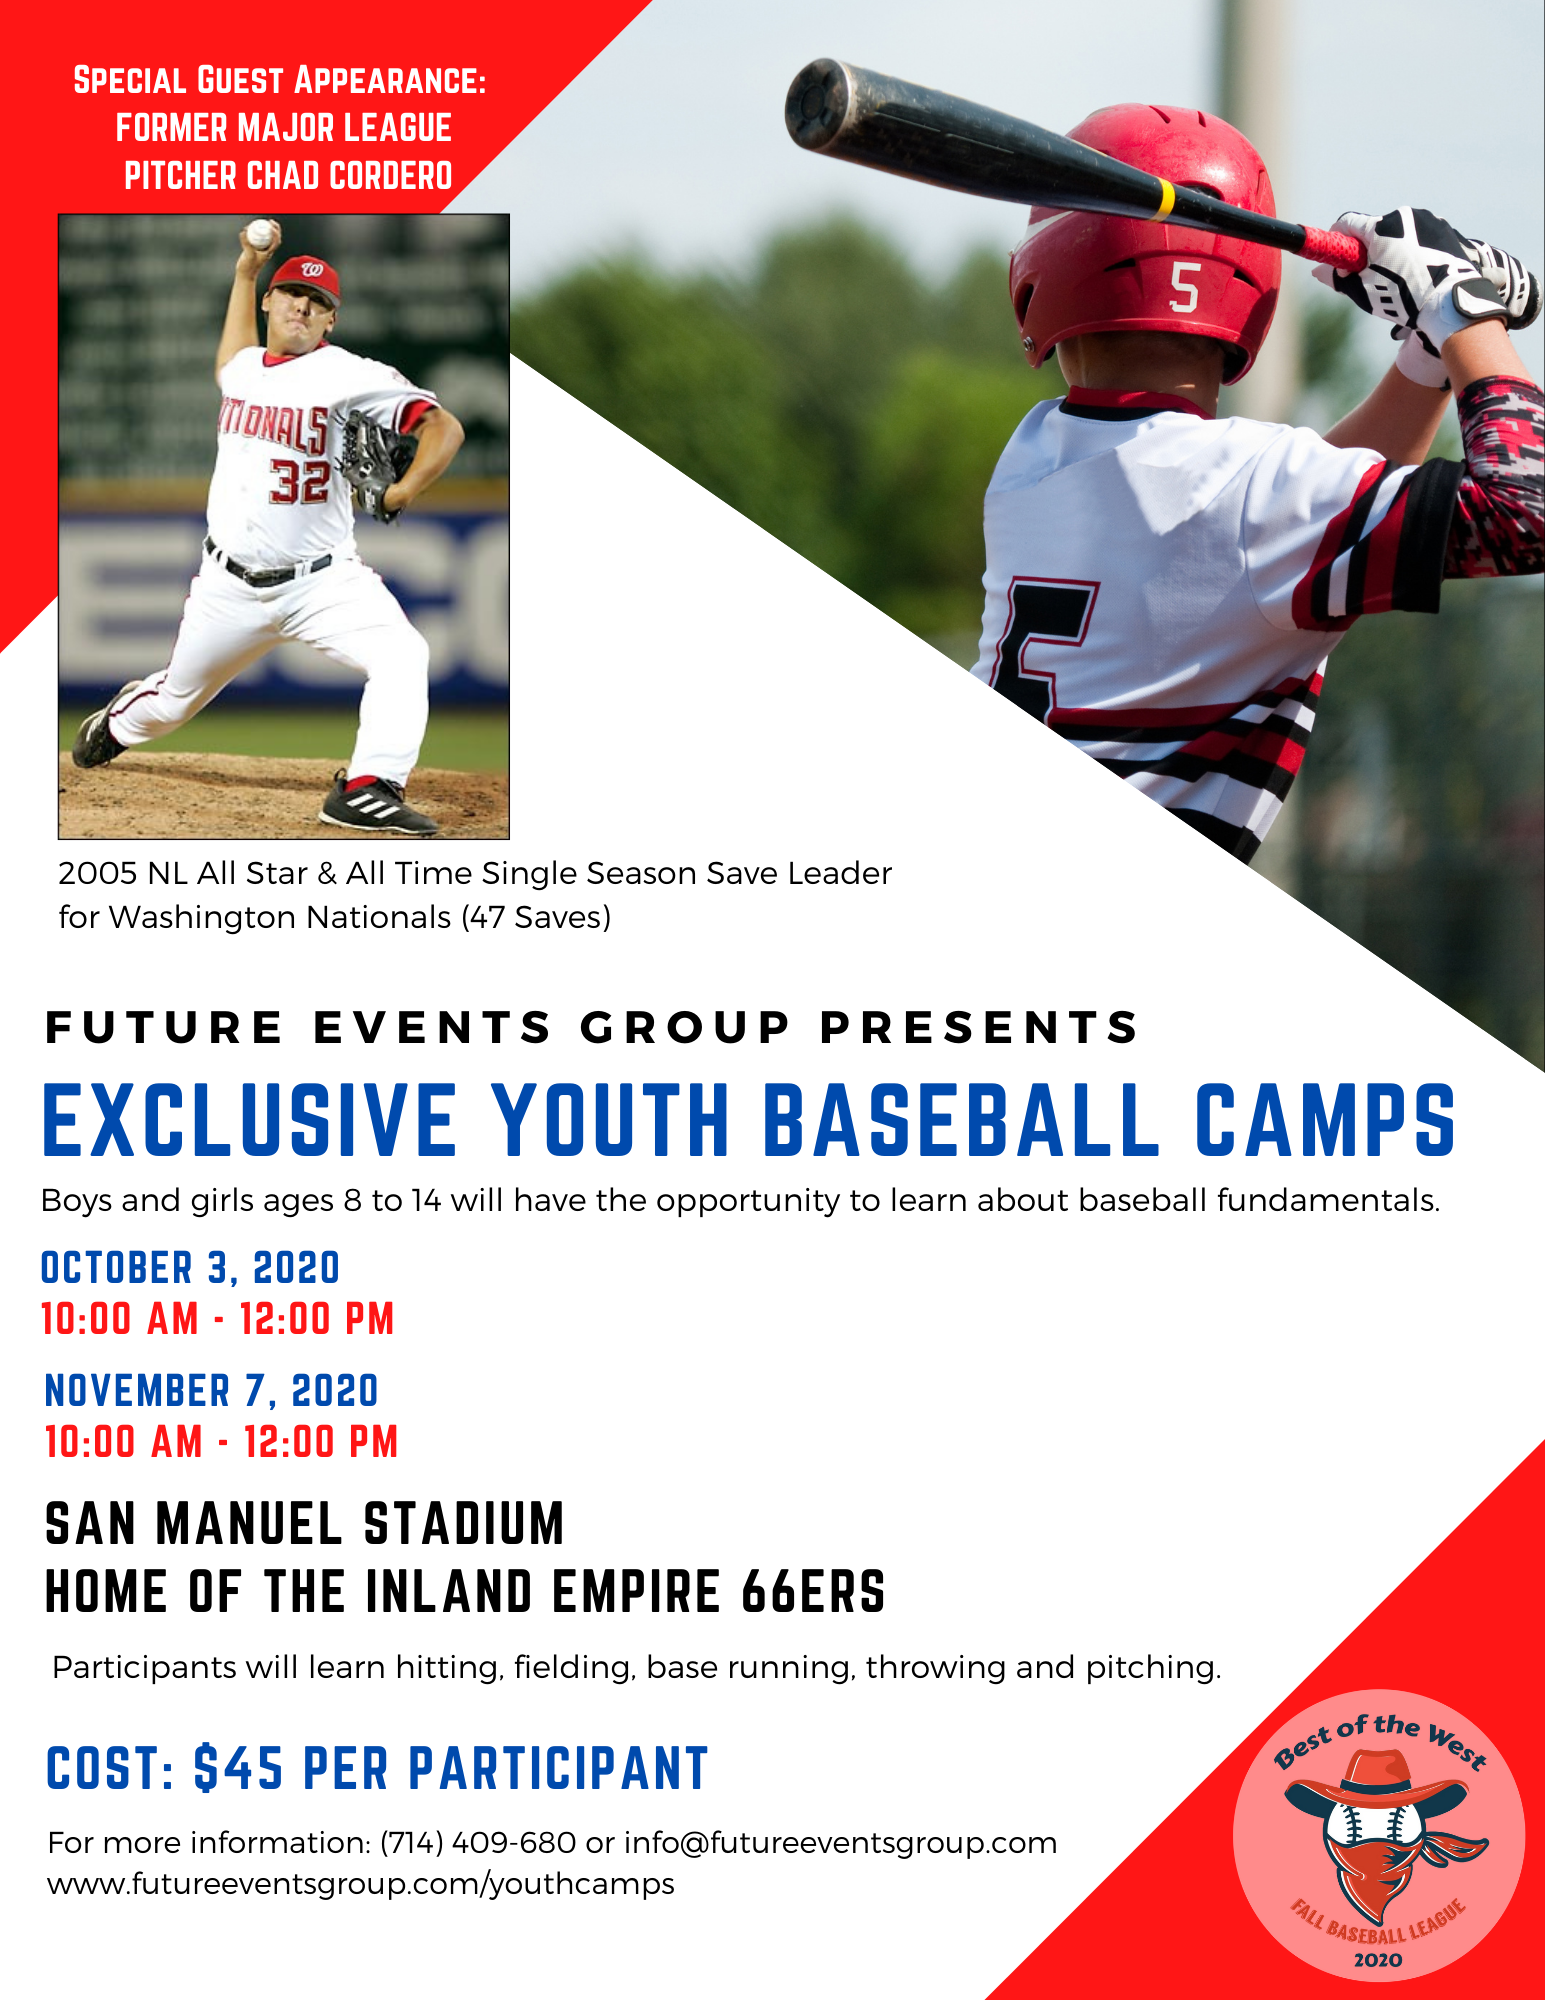 Youth - Baseball Camps rev 09-28-2020